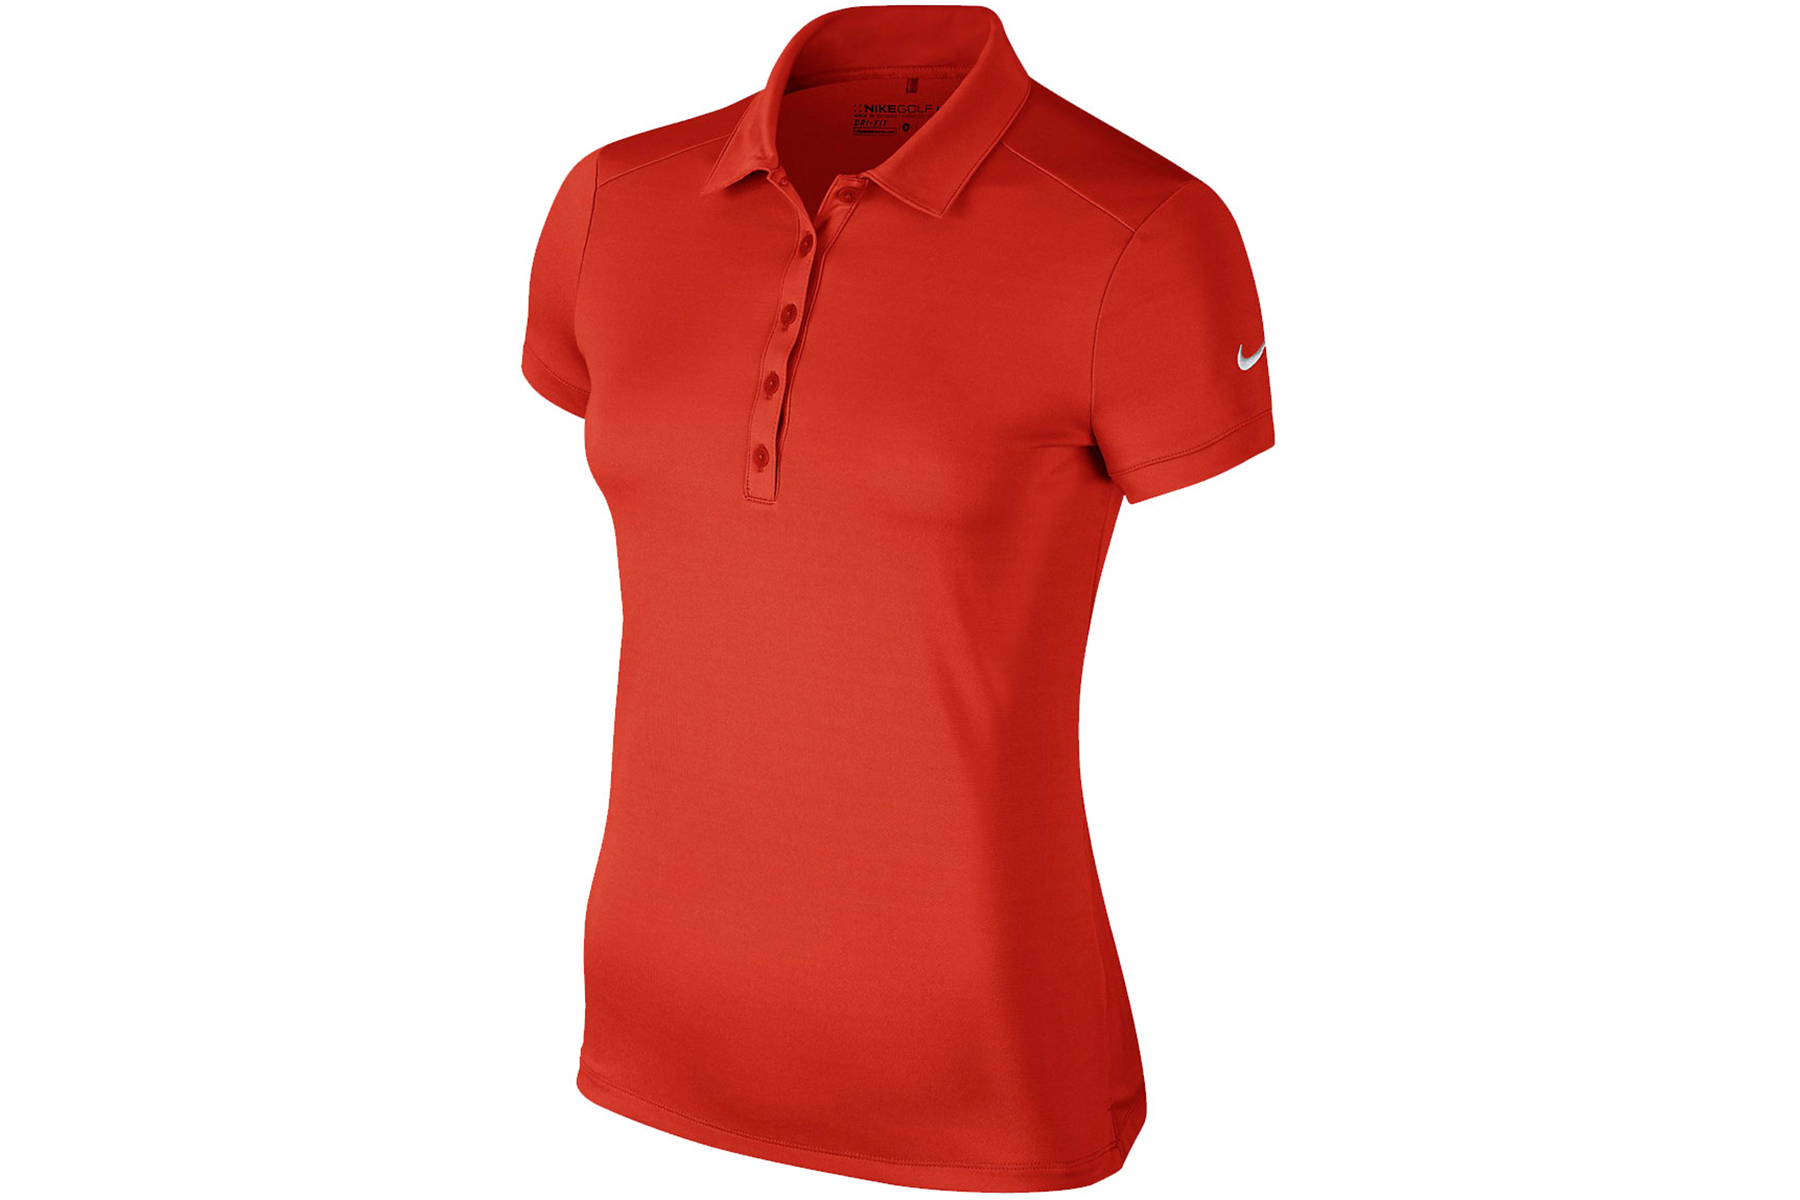 Nike golf victory solid ladies polo shirt from american golf for Nike golf victory polo shirt